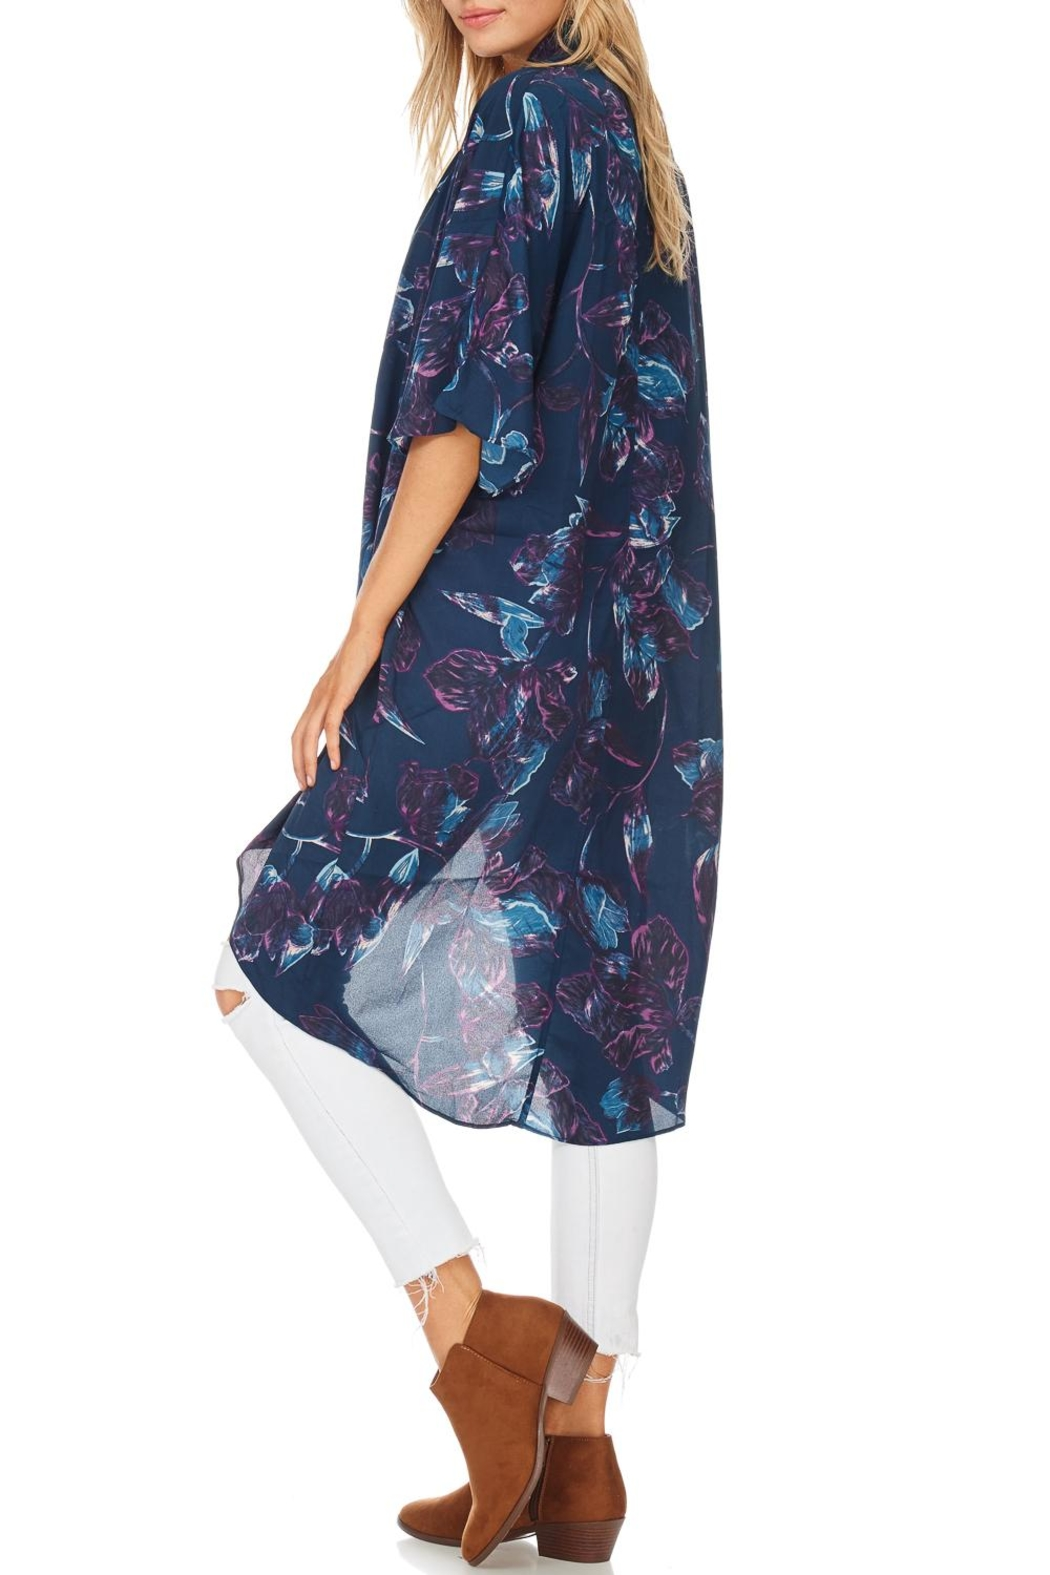 Everly Navy Floral Kimono - Side Cropped Image